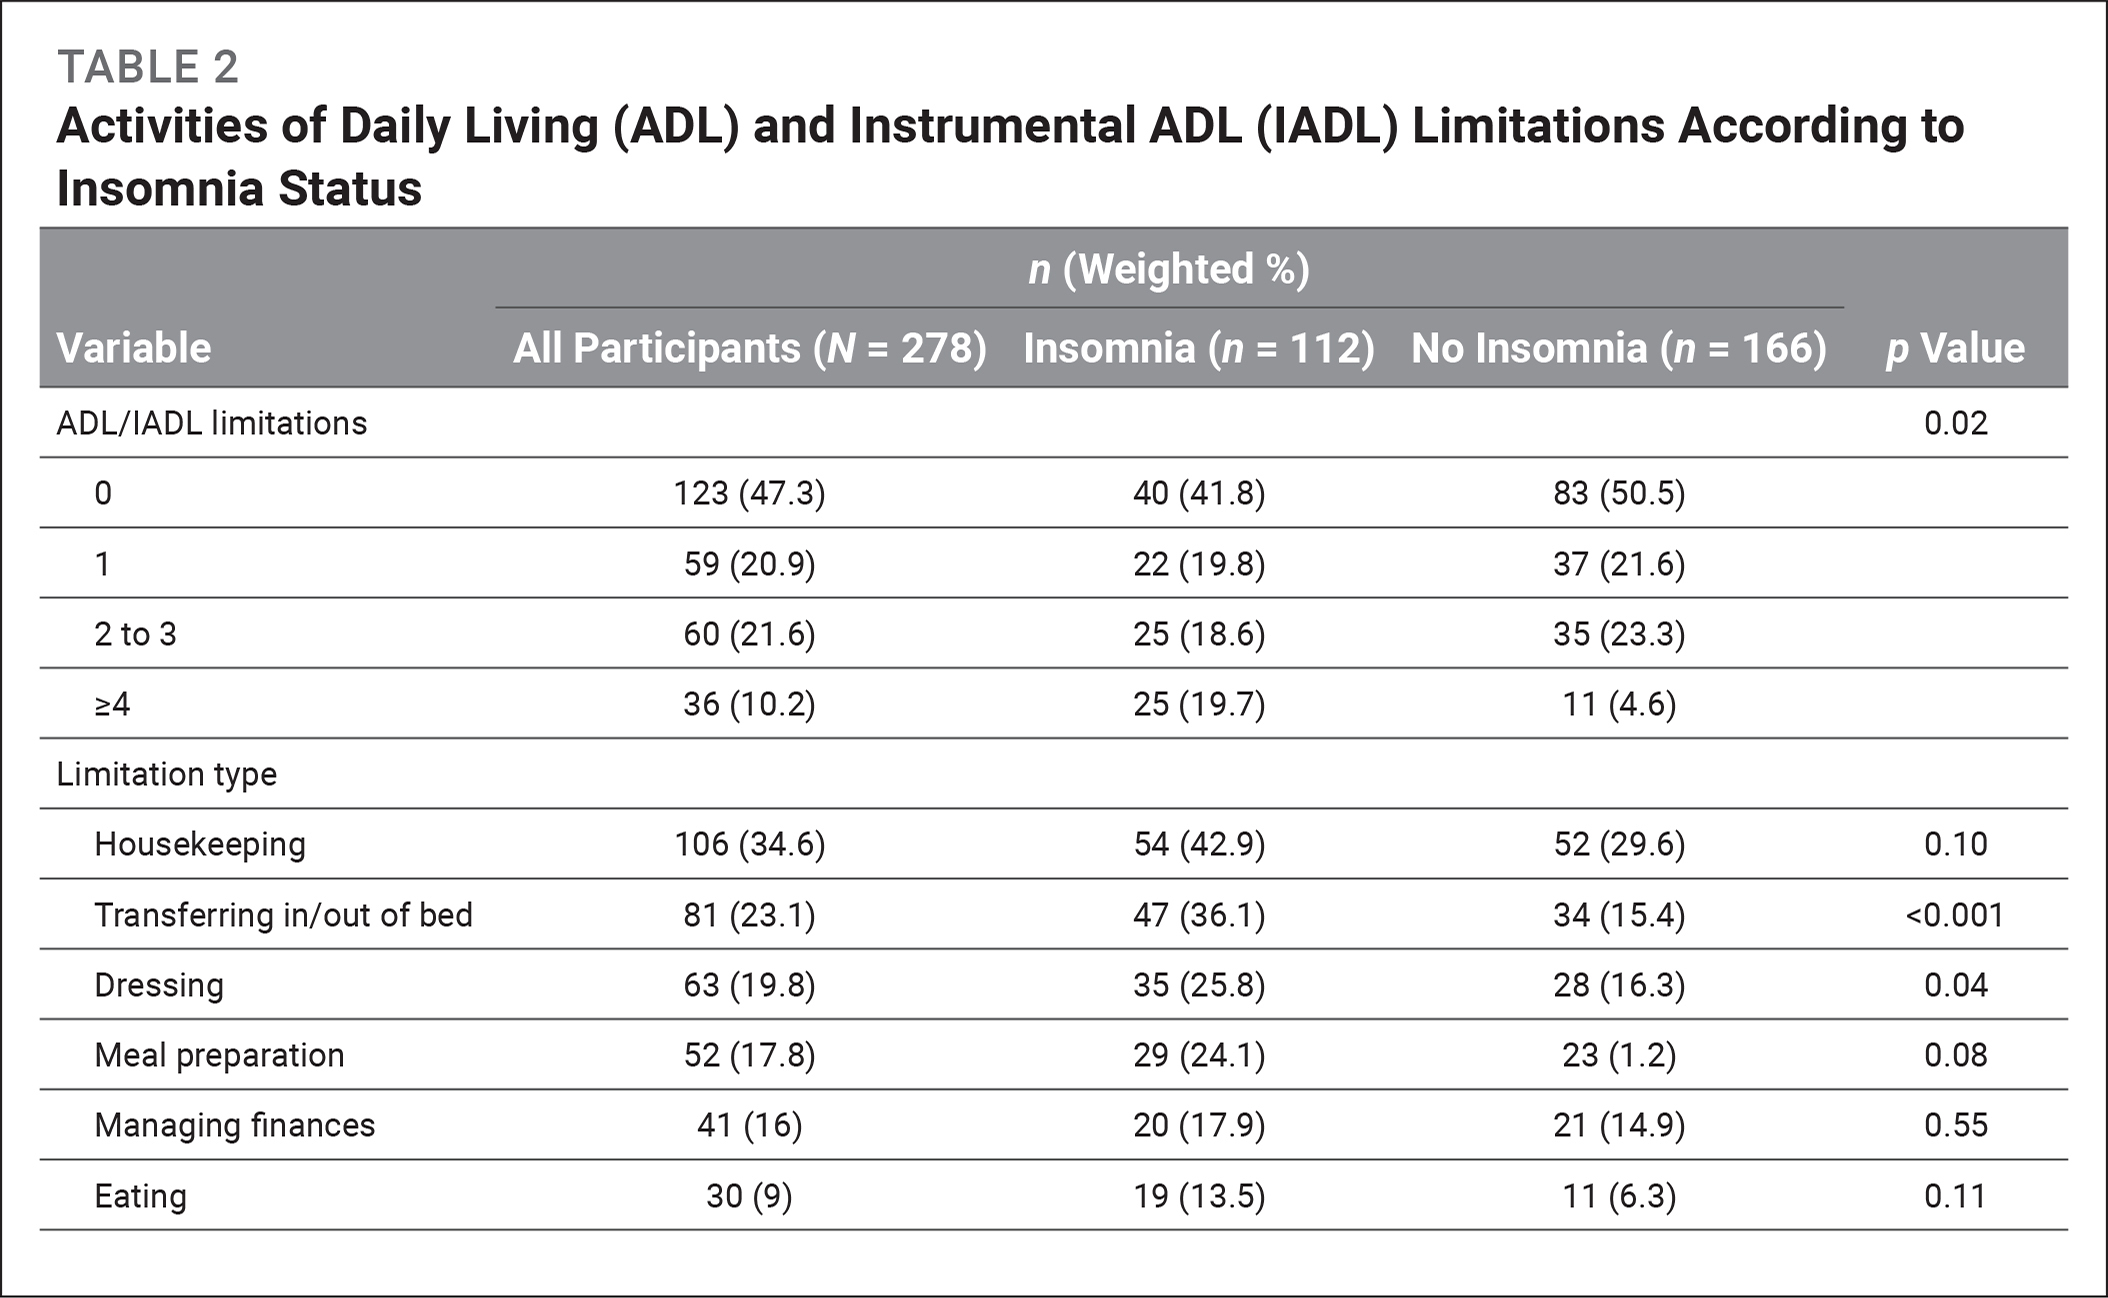 Activities of Daily Living (ADL) and Instrumental ADL (IADL) Limitations According to Insomnia Status